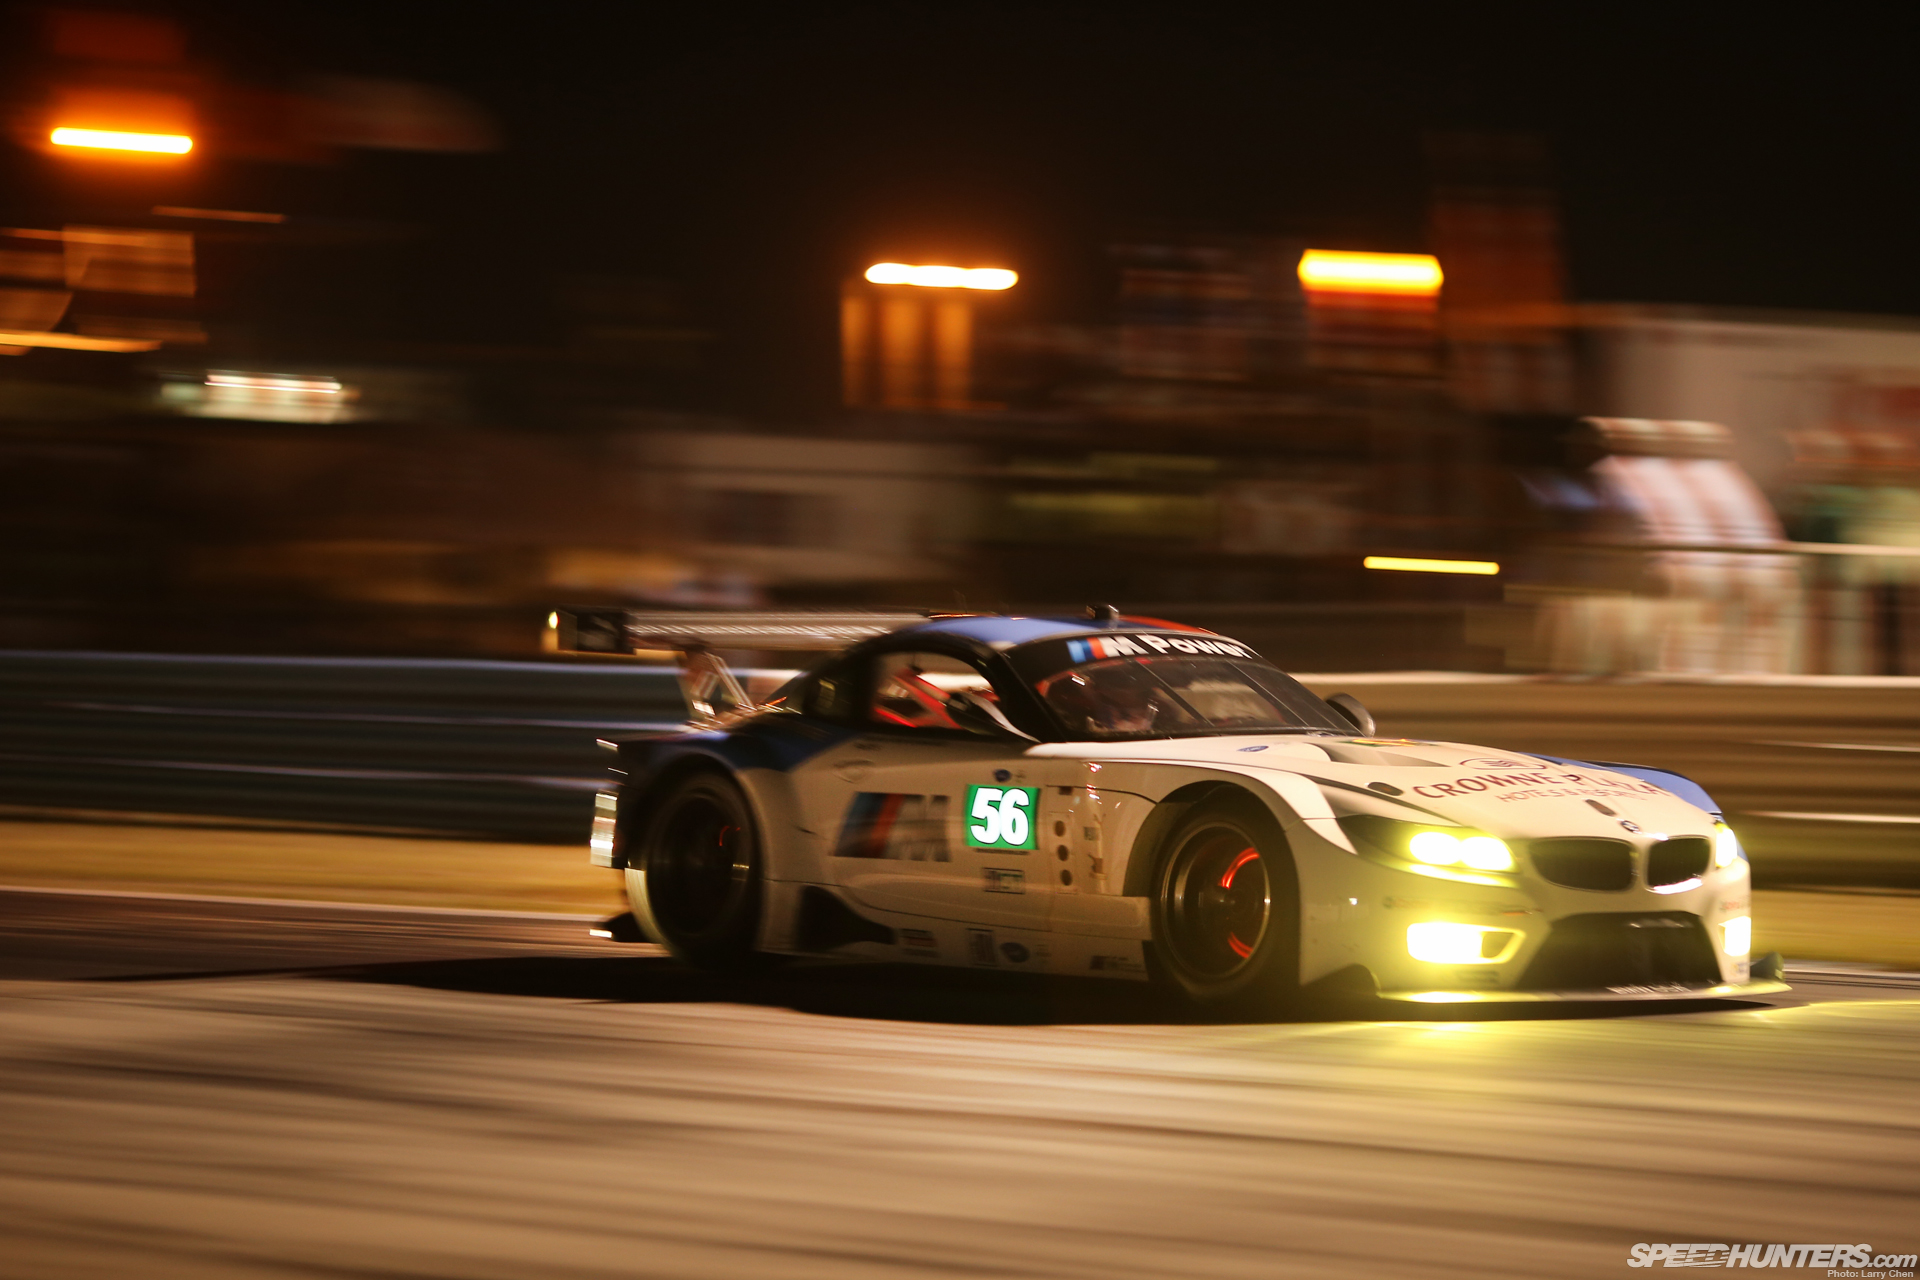 Street Racing Cars Wallpaper With Girls Bmw Z4 Race Car Glowing Brakes Motion Blur Night Racing